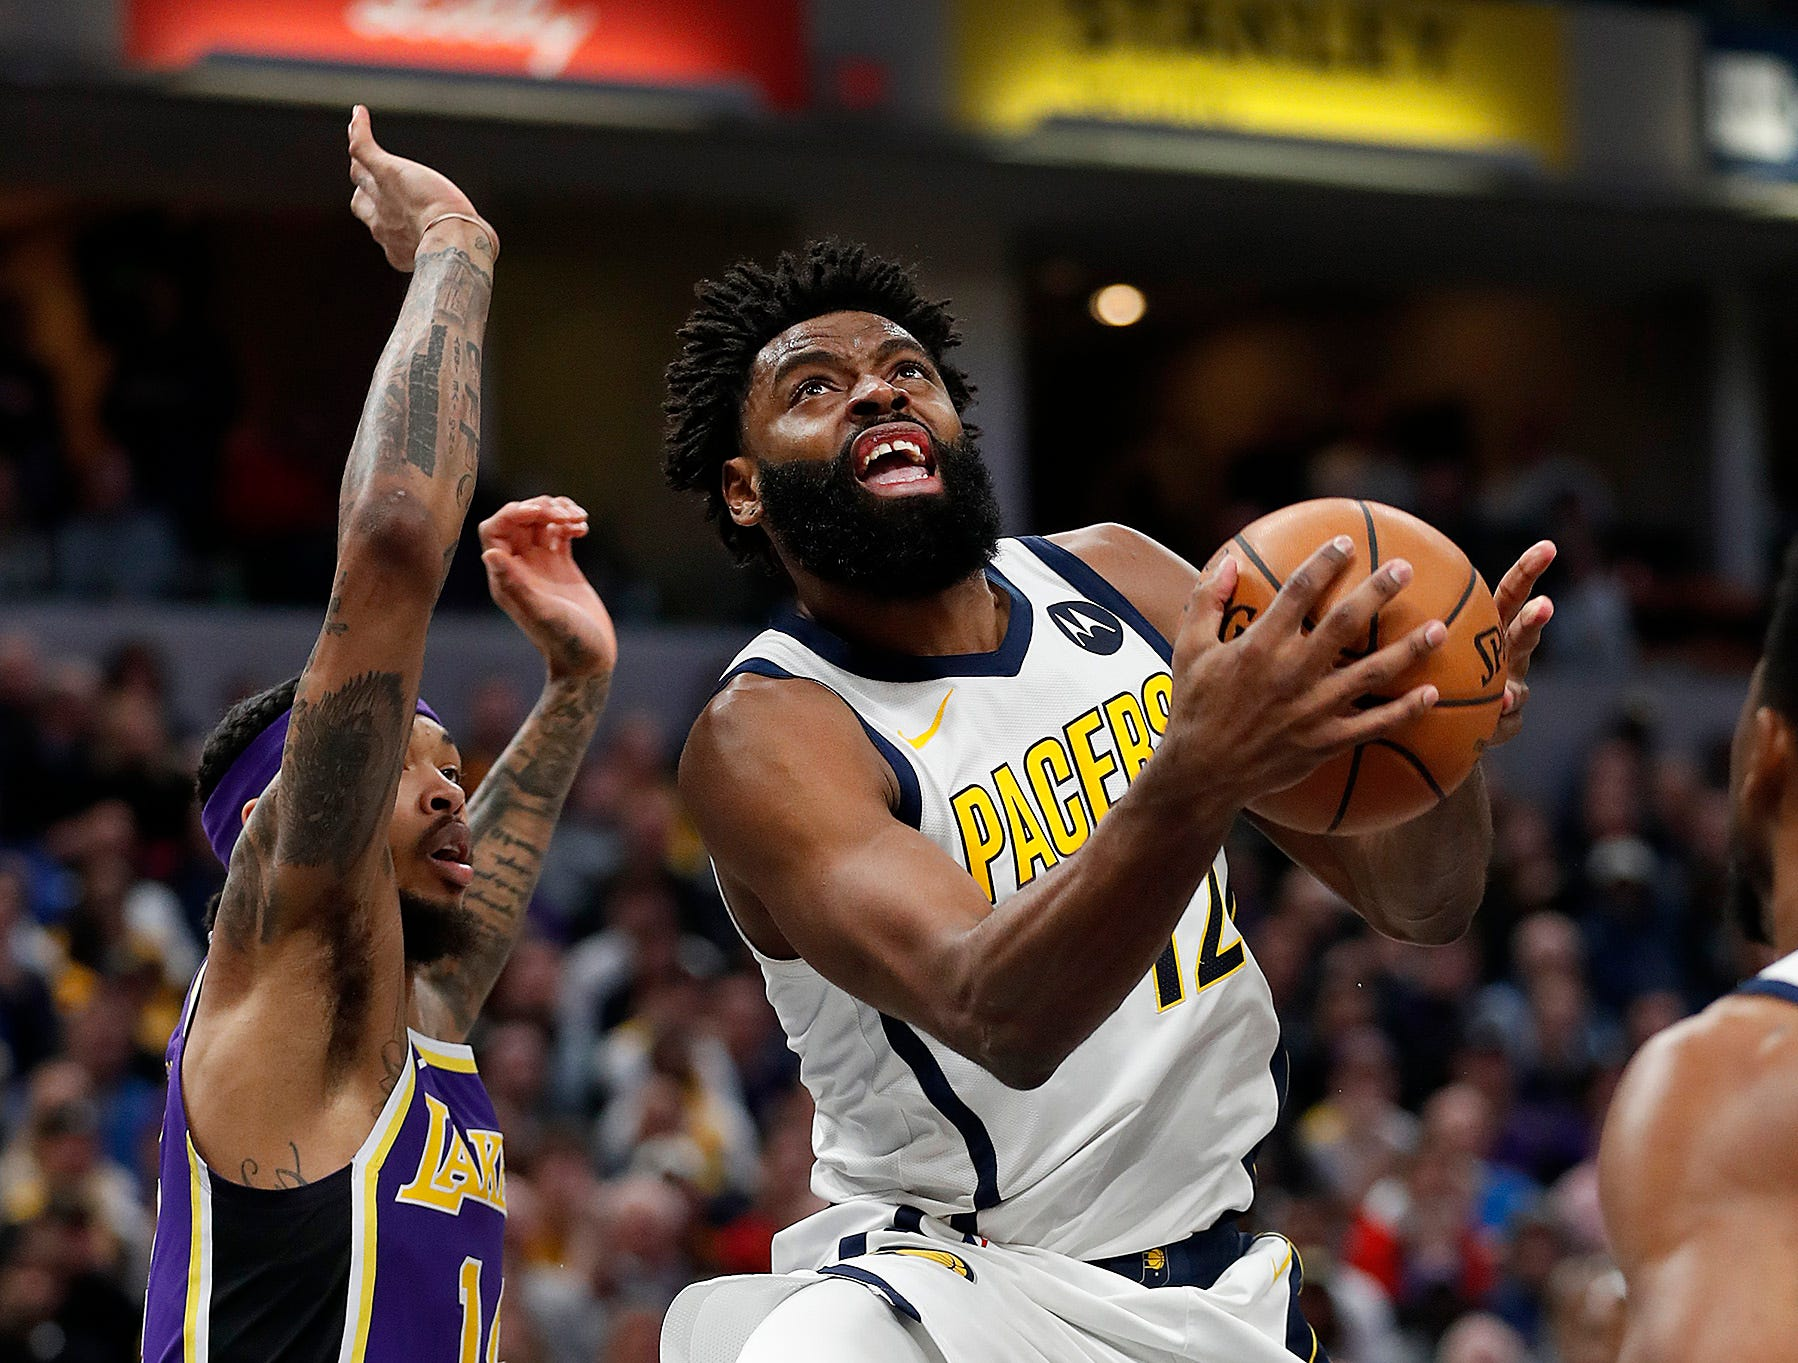 Indiana Pacers guard Tyreke Evans (12) drives on Los Angeles Lakers forward Brandon Ingram (14) in the first half of their game at Bankers Life Fieldhouse on Tuesday, Feb. 5, 2019.